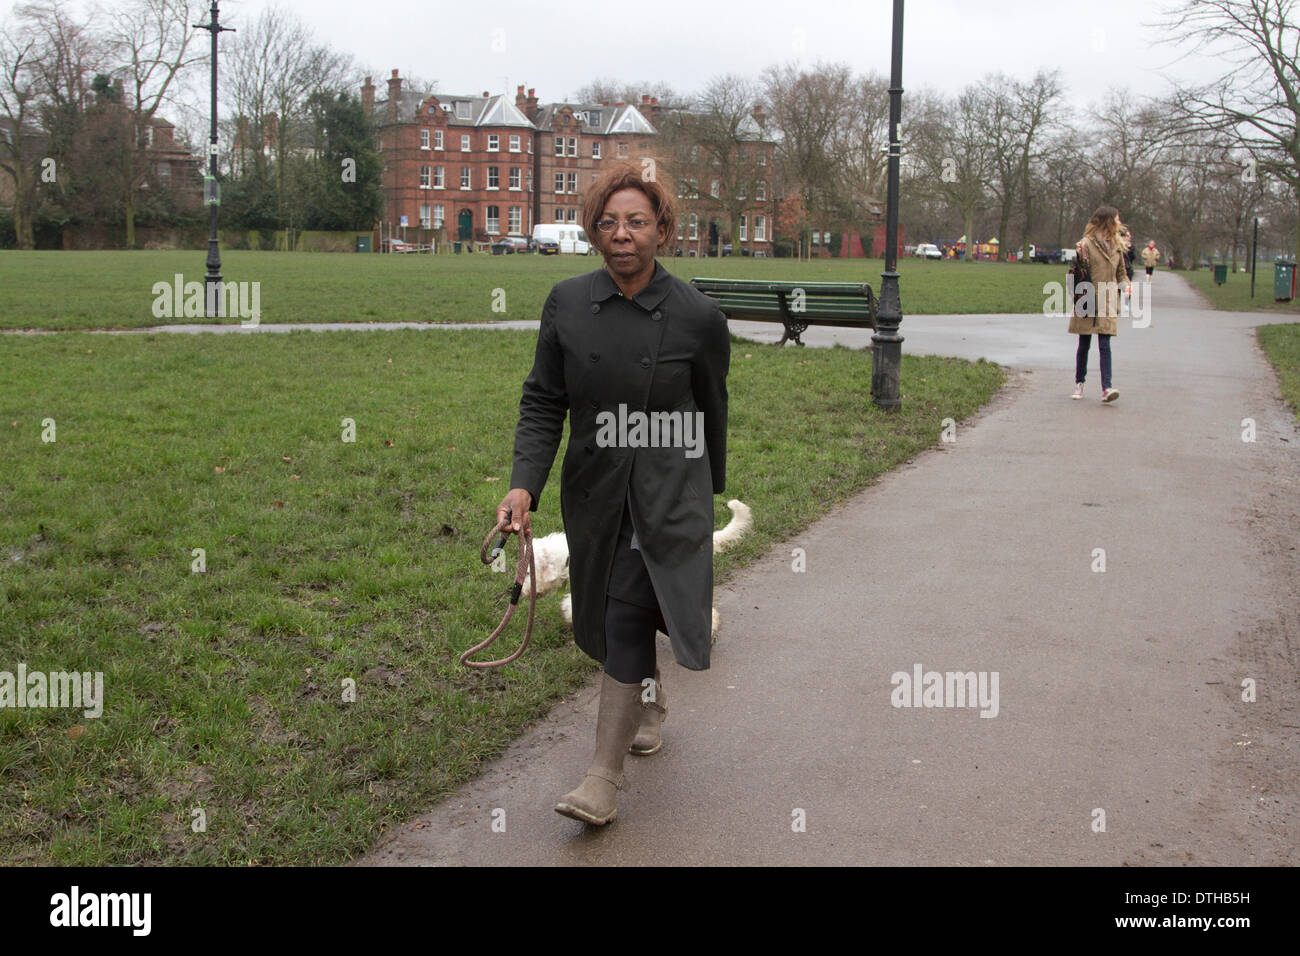 London UK. 18th February 2014. Barrister and part time judge Constance Briscoe who stood trial at Southwark Crown Court for lying to police about the speeding points concerning the MP Chris Huhne Speeding  points is seen walking her dogs in Clapham Common. Constance Briscoe is due appear in court in April after the jury failed to reach a verdict Credit:  amer ghazzal/Alamy Live News - Stock Image